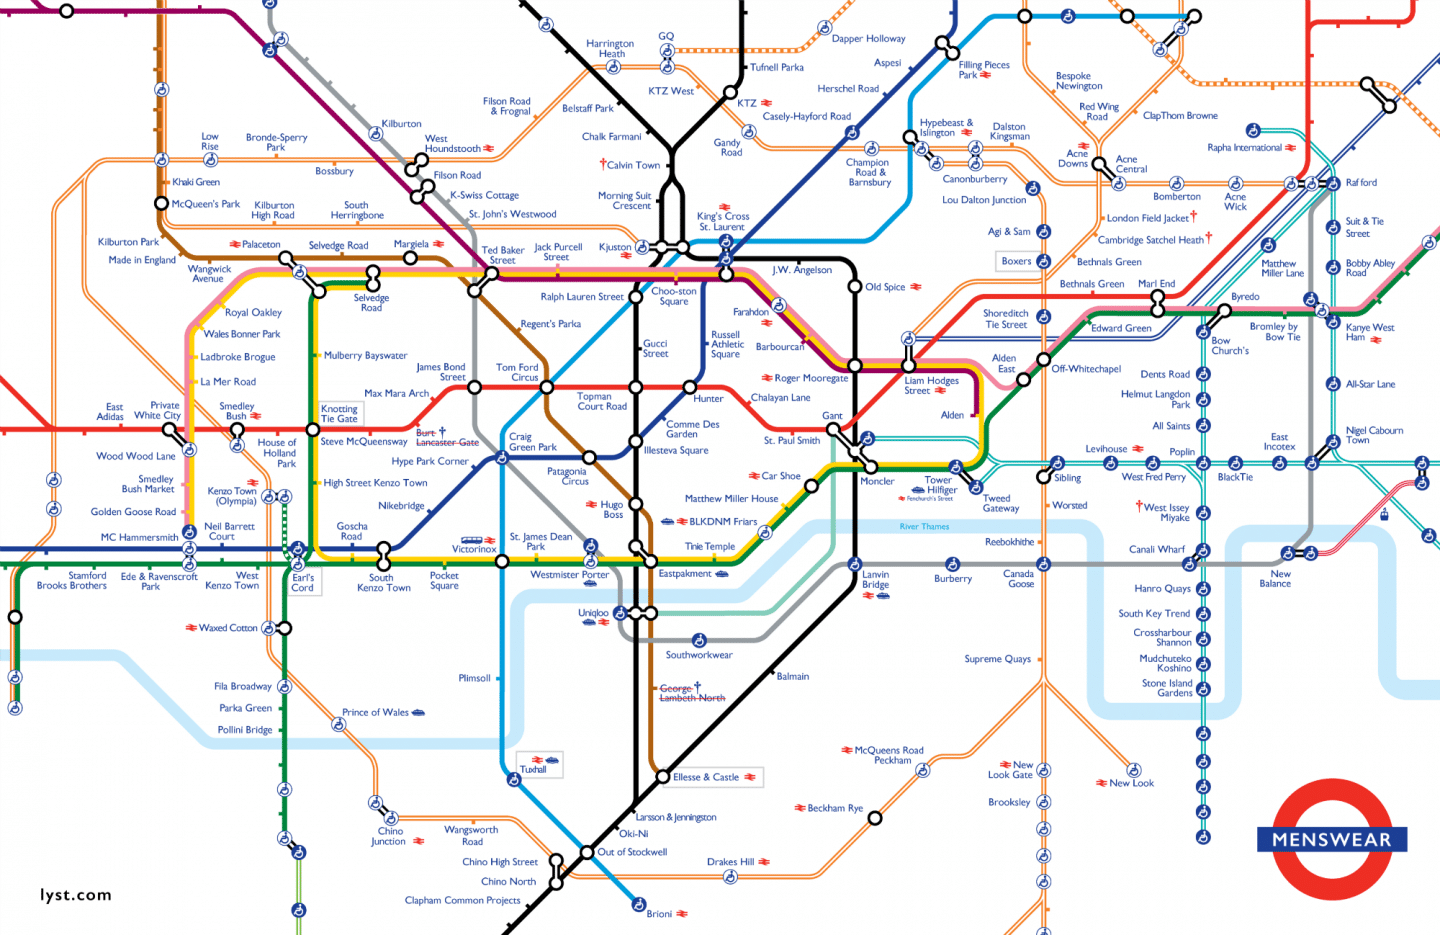 Map Of London With Underground.The London Underground Map Has Been Given A Very Dapper Makeover